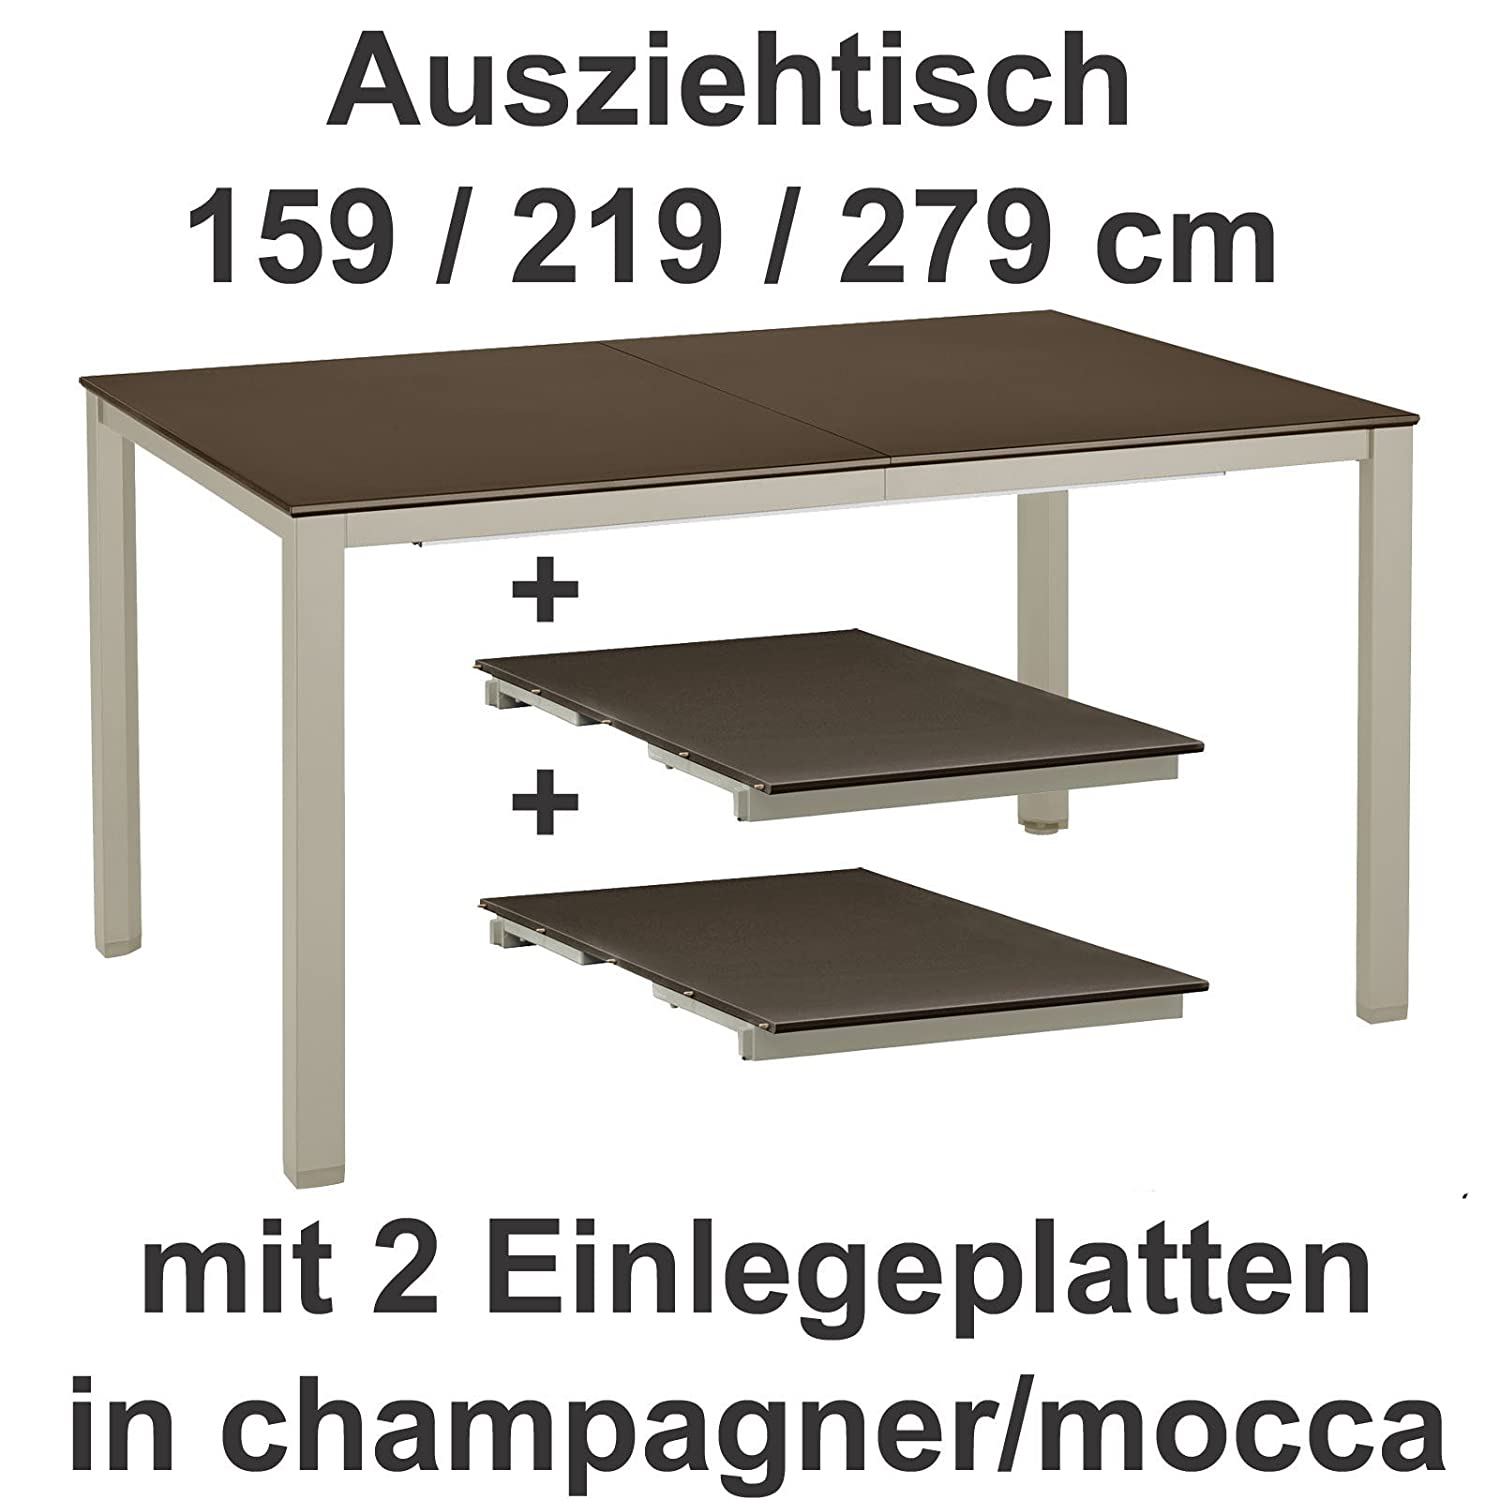 kettler ausziehtisch 159 219 279 cm in champagner mocca gartentisch g nstig online kaufen. Black Bedroom Furniture Sets. Home Design Ideas